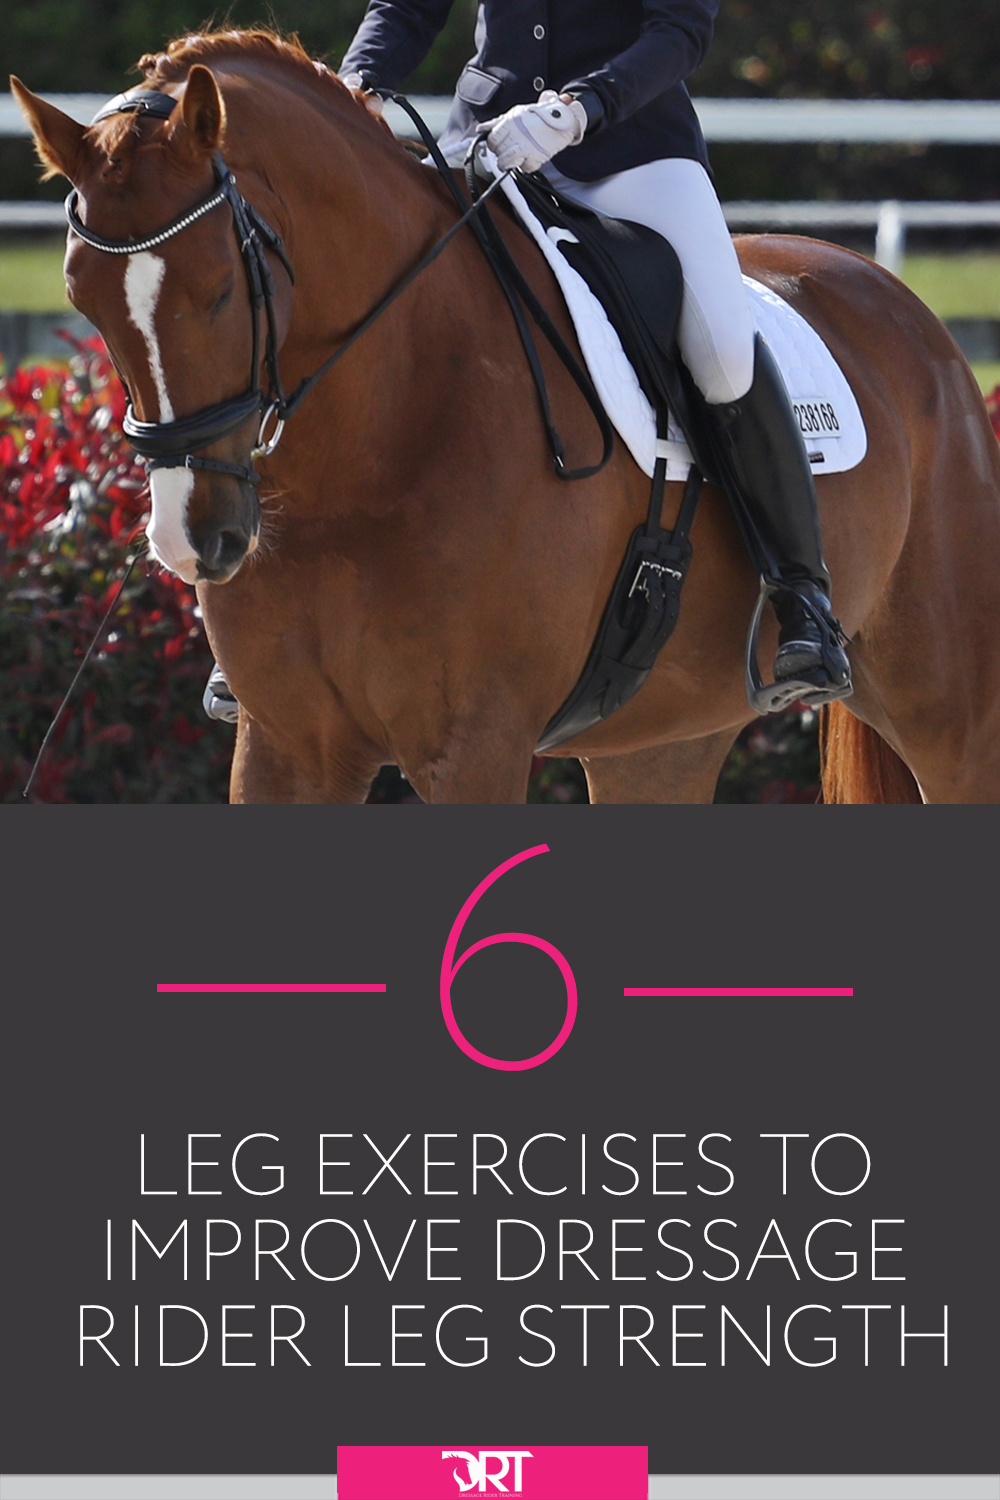 6 Leg Exercises To Help Improve Dressage Rider Leg Strength, including video on how to do each of the exercises. 